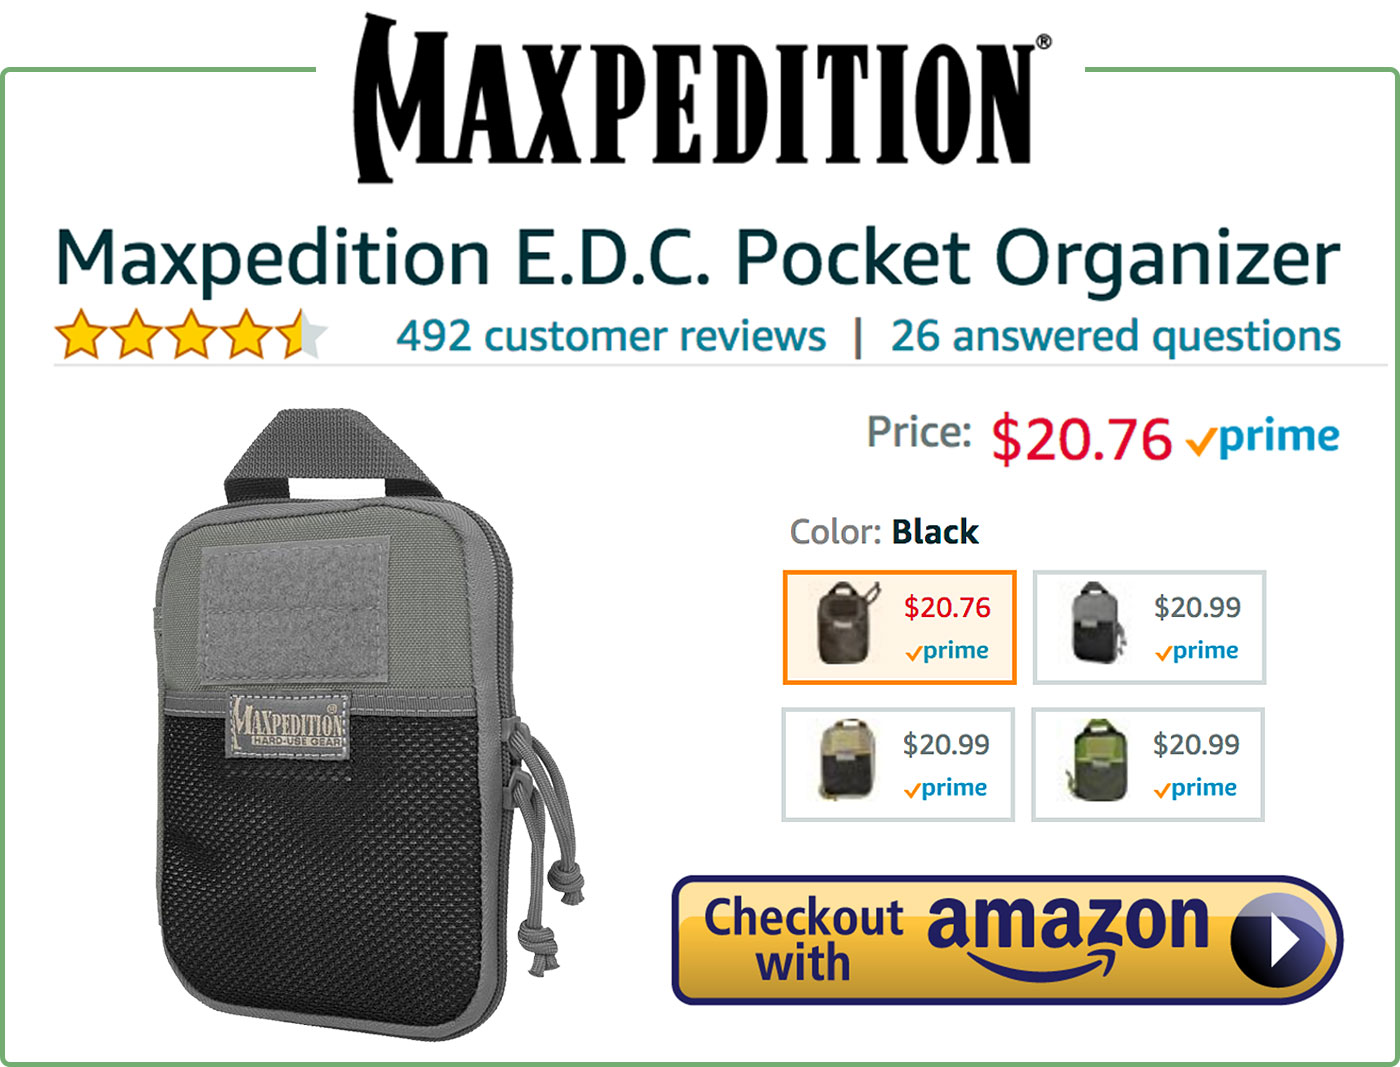 Maxpedition E.D.C. Pocket Organizer Buy Now Box